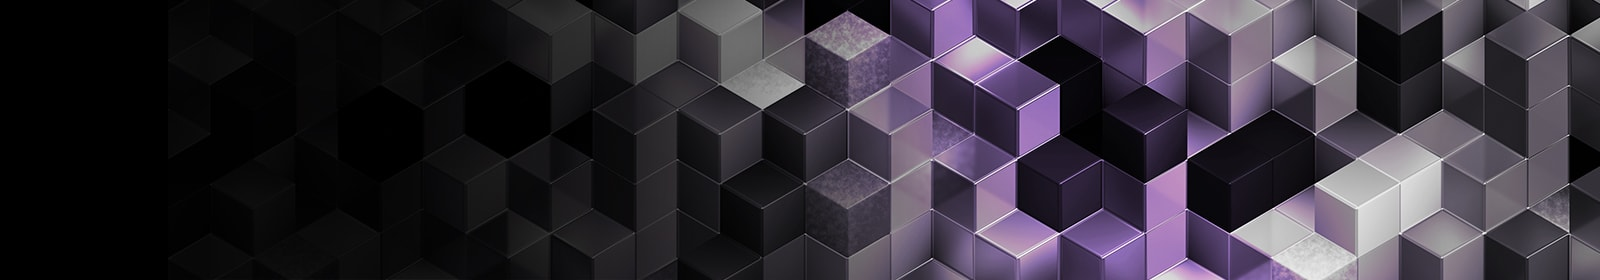 Image of stacked cubes of varying colors